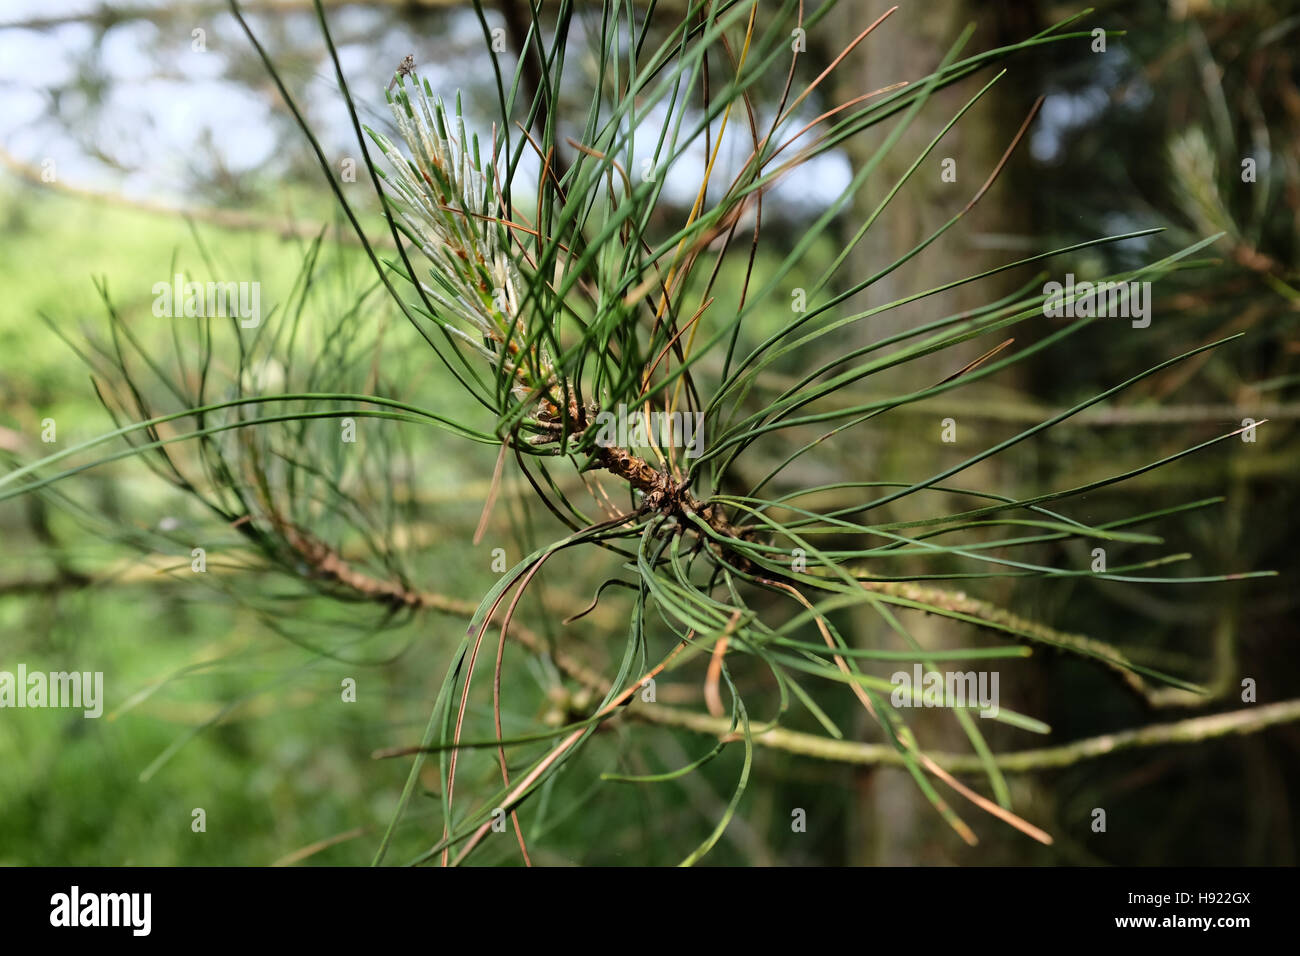 Corsican pine foliage showing symptoms of Dothistroma or red band needle blight - Stock Image